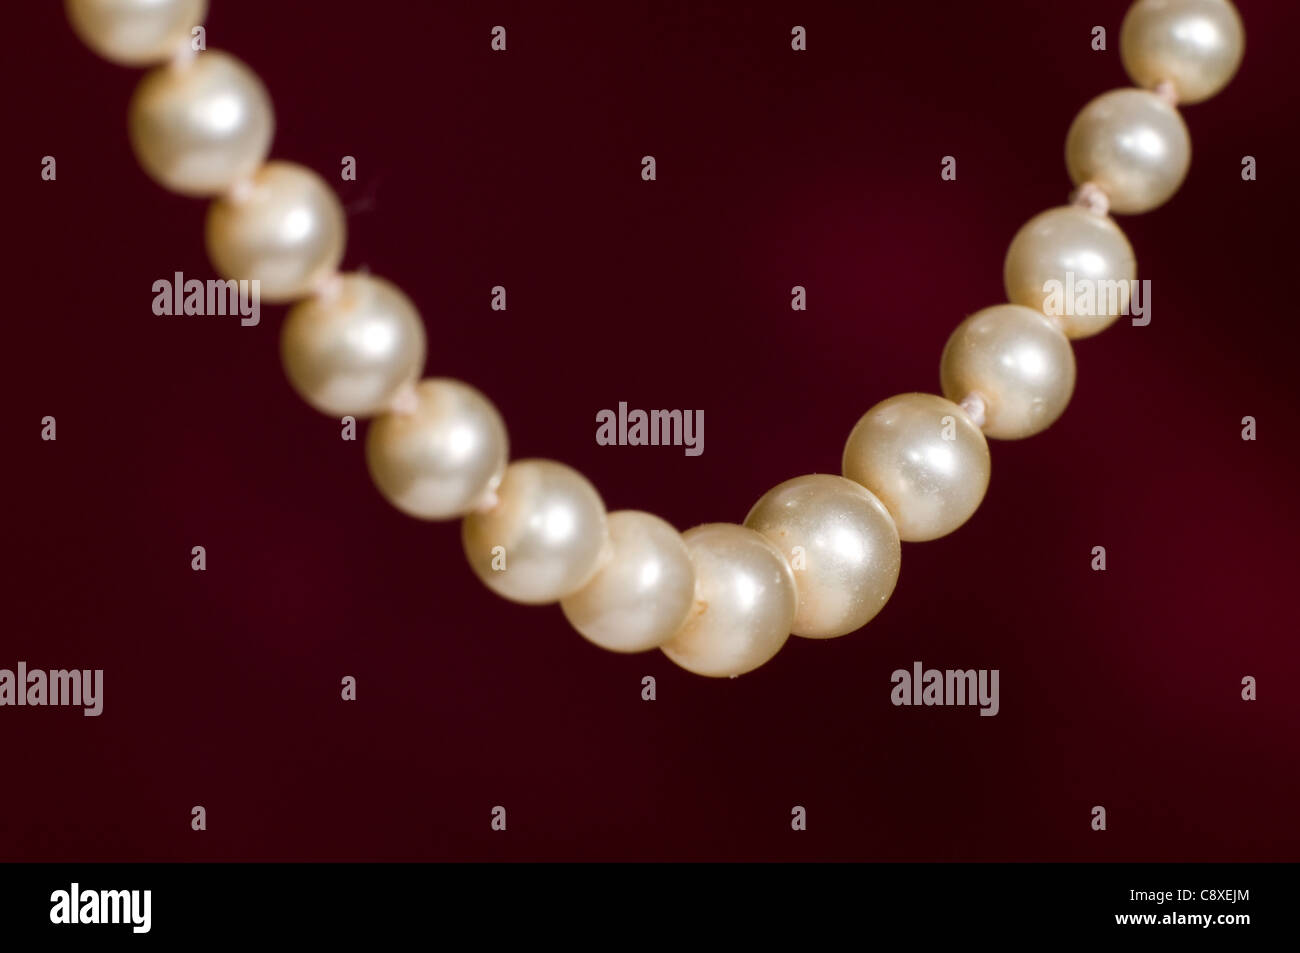 genuine pearl necklace - Stock Image